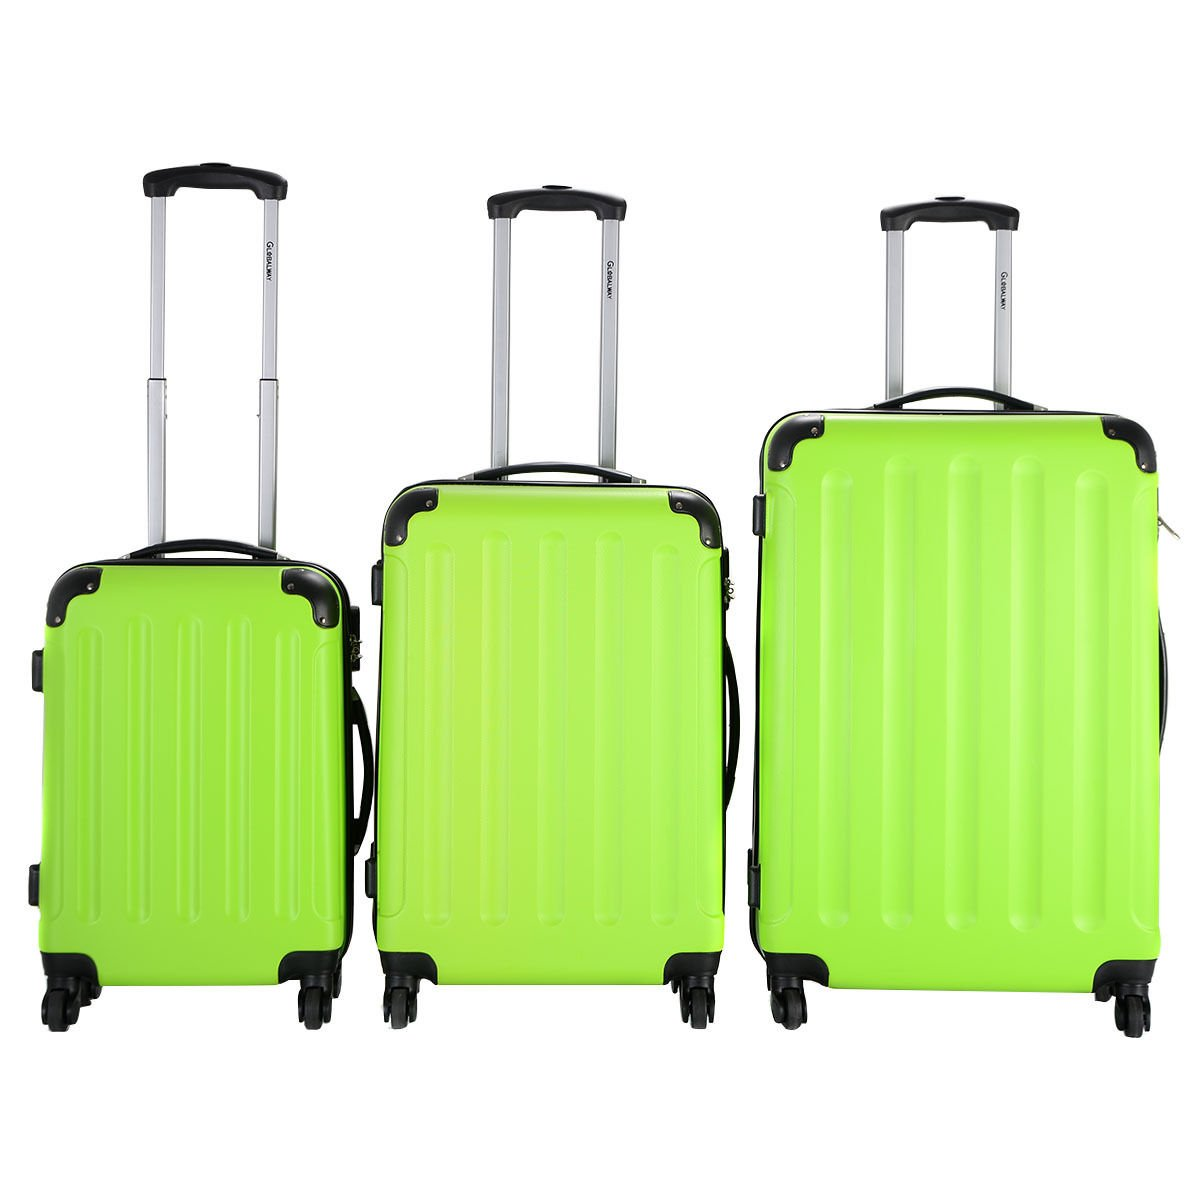 3 Pcs Luggage Travel Set Bag ABS+PC Trolley Suitcase Green